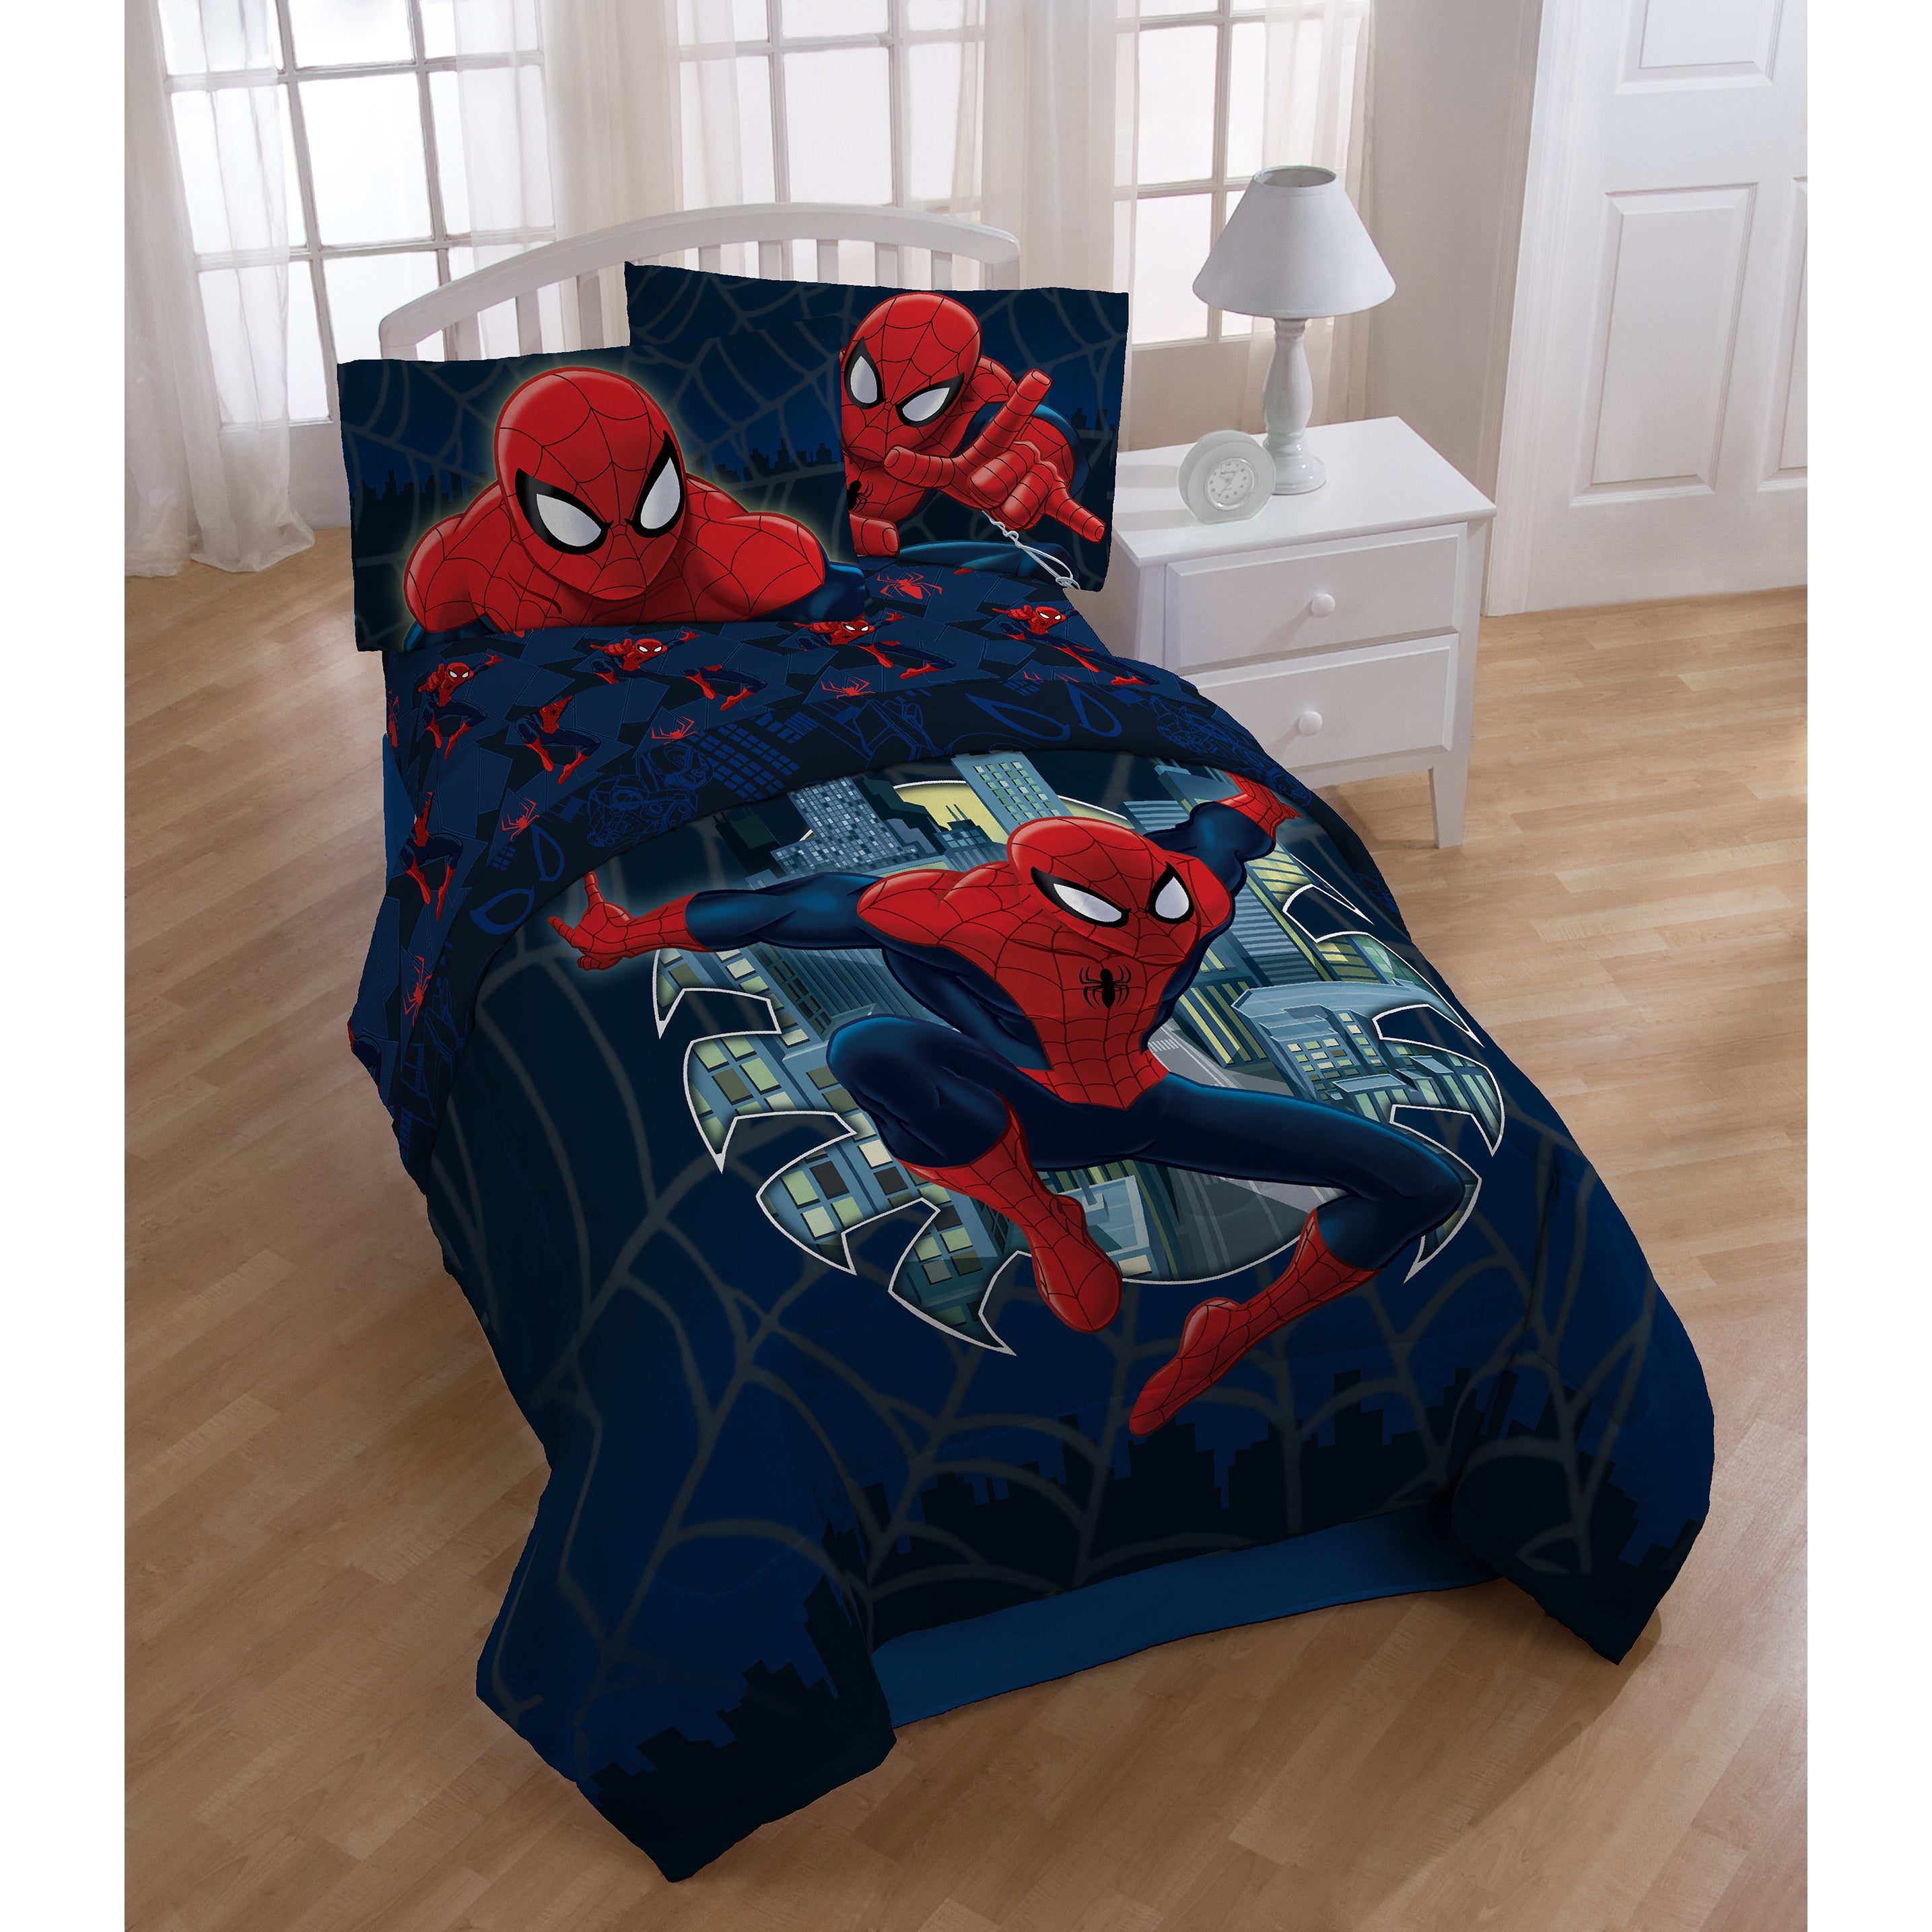 Marvel Spiderman 6-piece Bed in a Bag with Sheet Set (6 P...